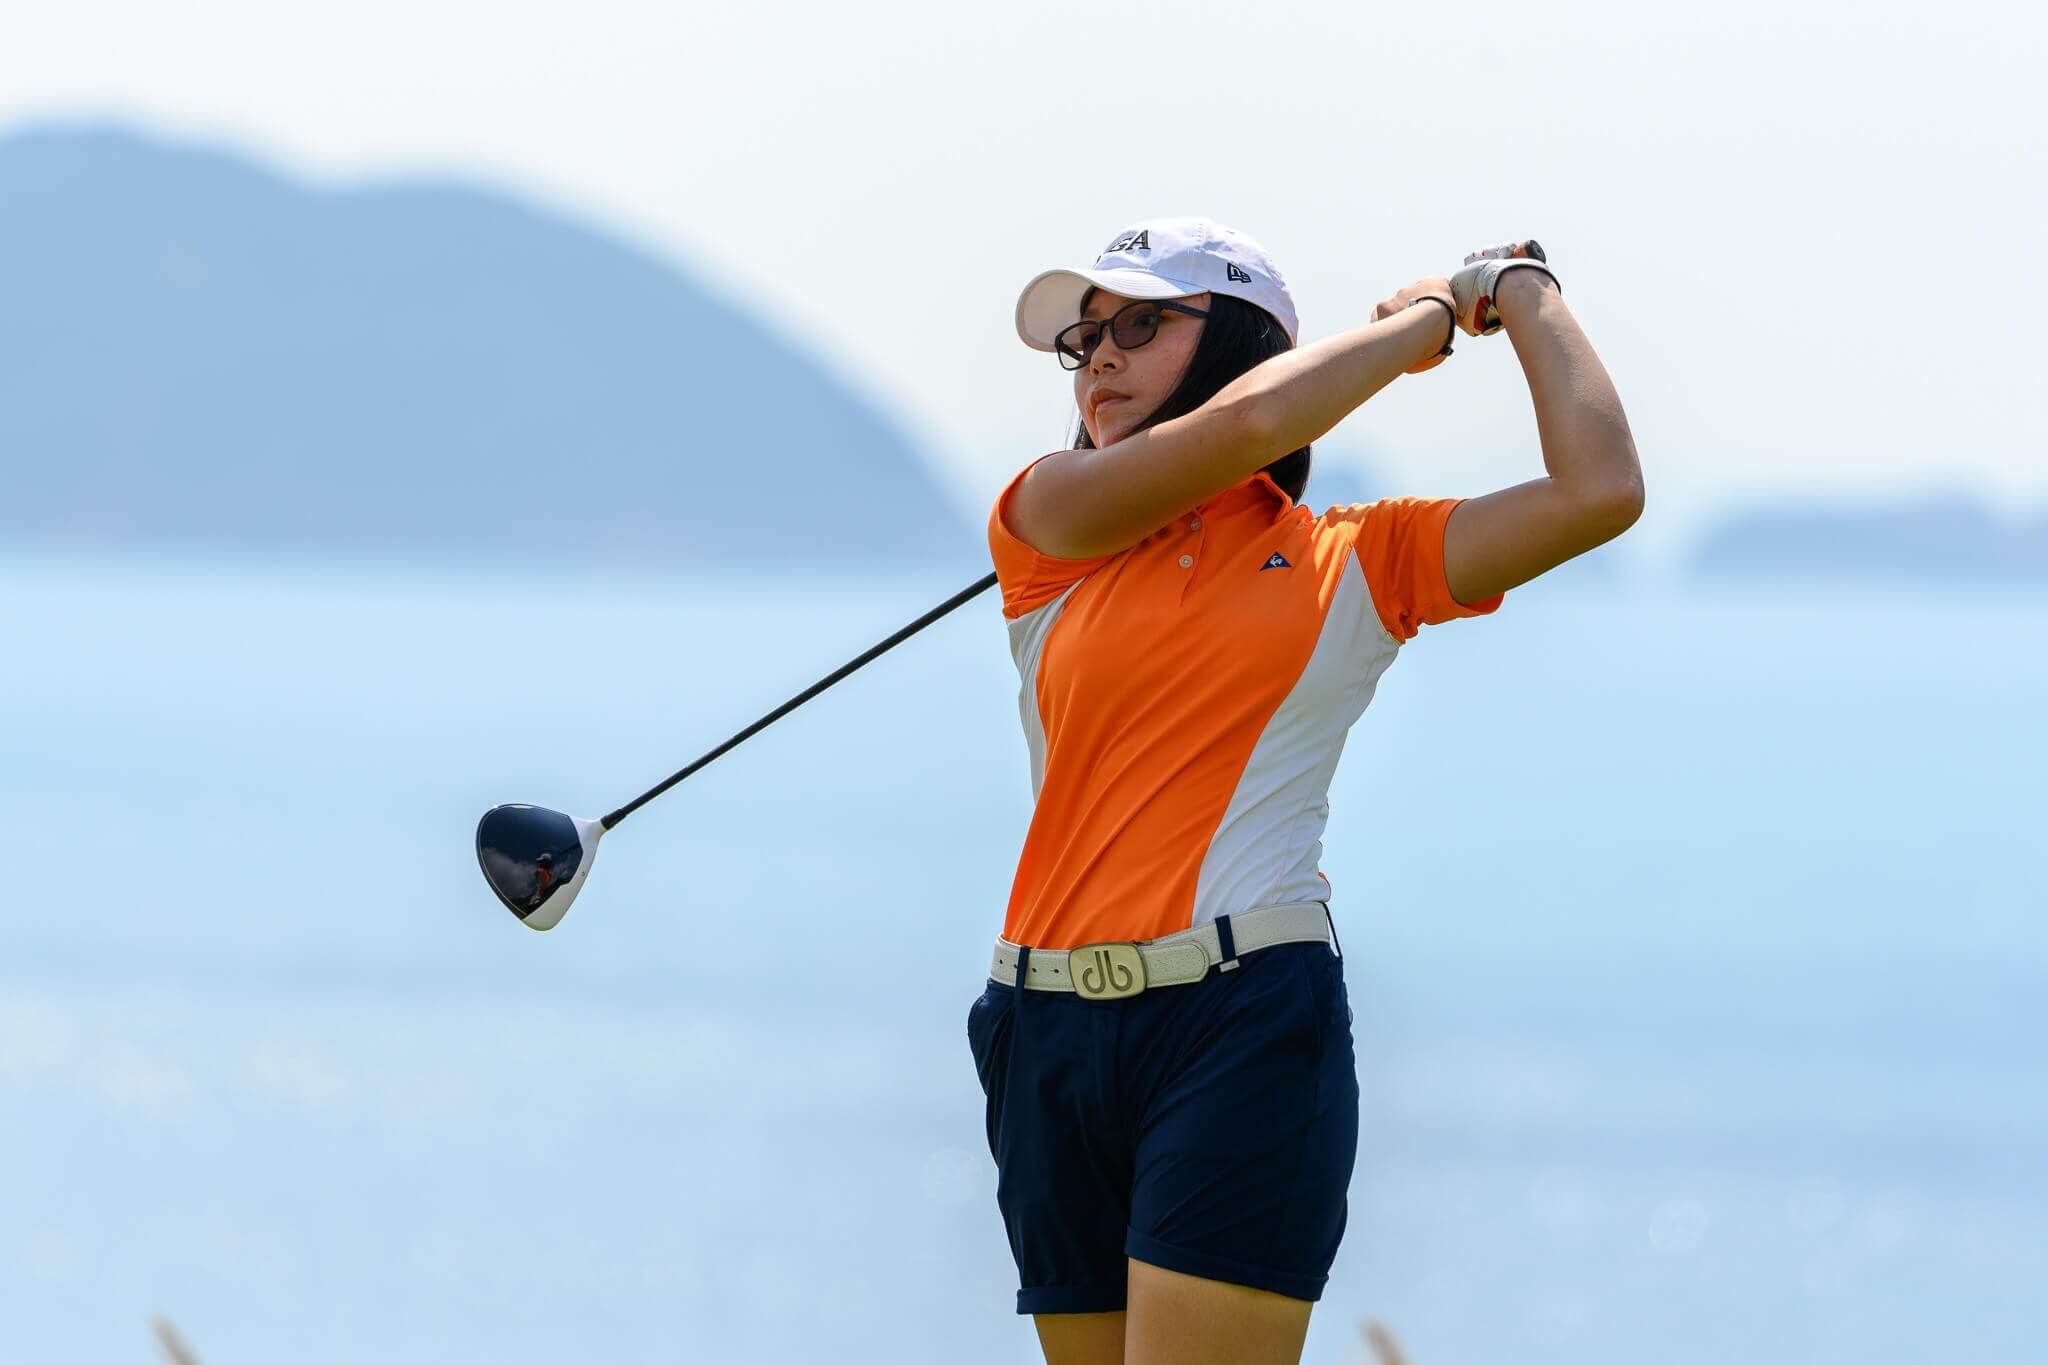 Lucky eight in search of hometown glory at EFG Hong Kong Ladies Open